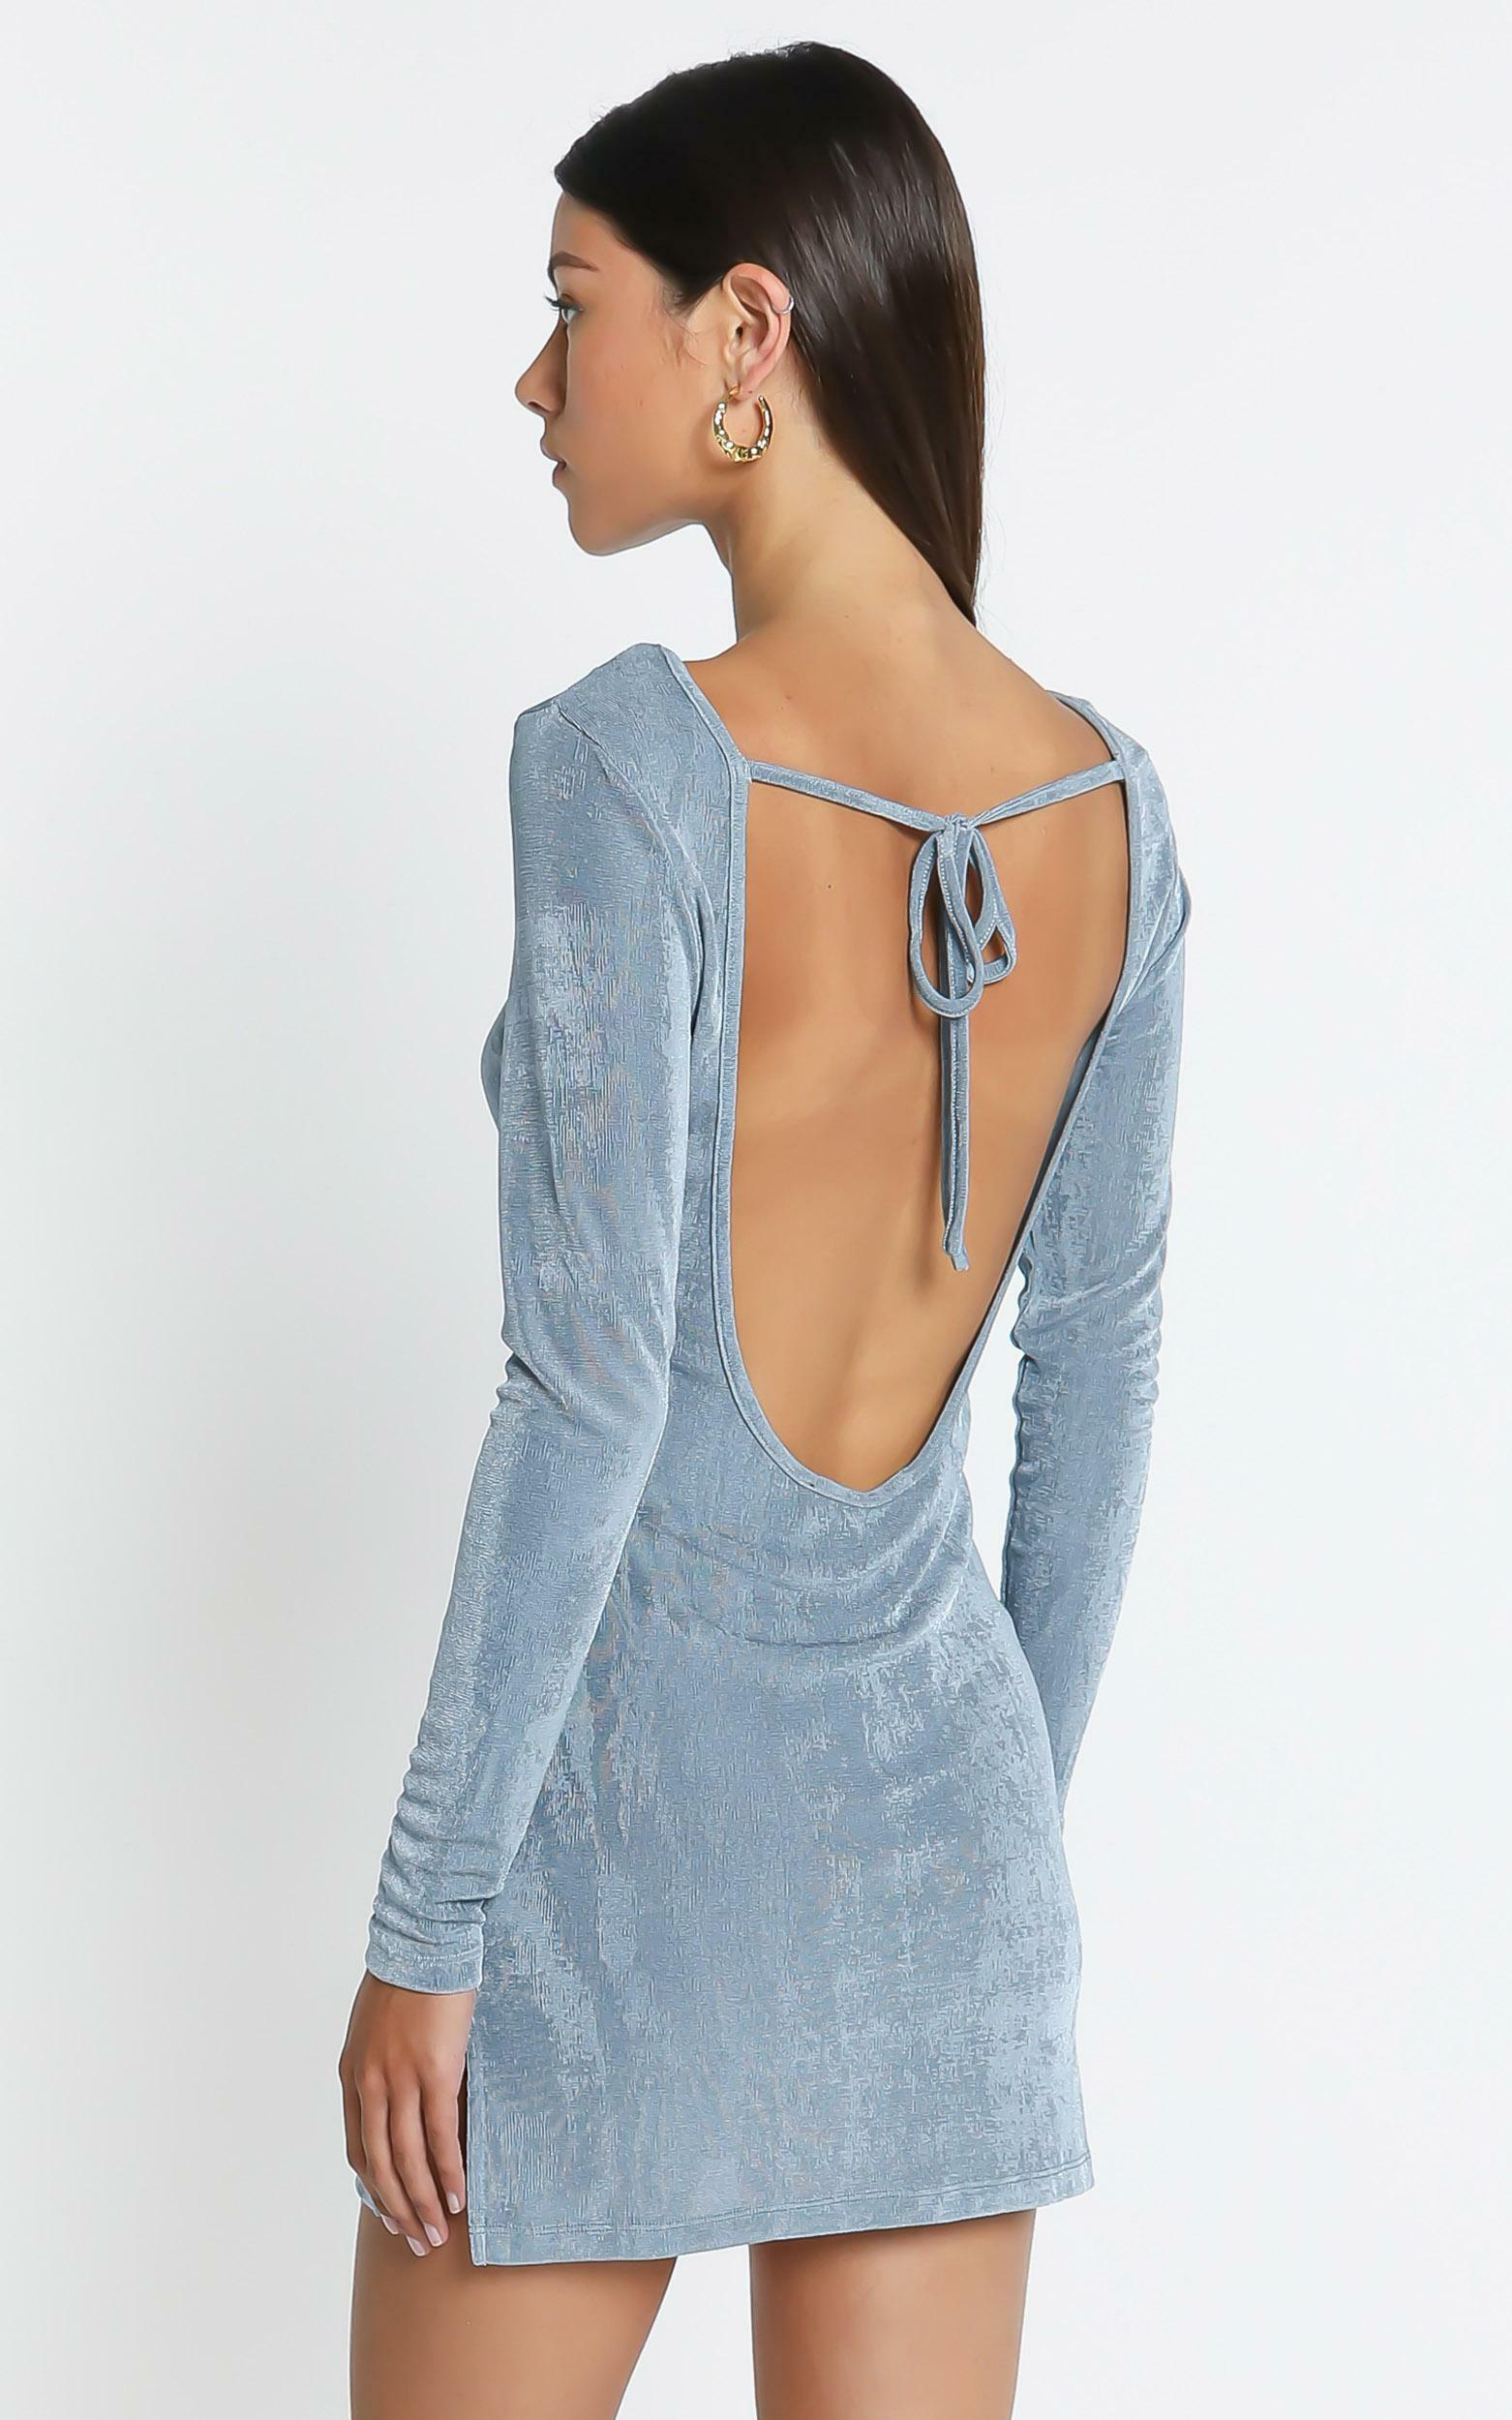 Lioness - Montana Mini Dress in Dusty Blue - 4 (XXS), BLU1, hi-res image number null